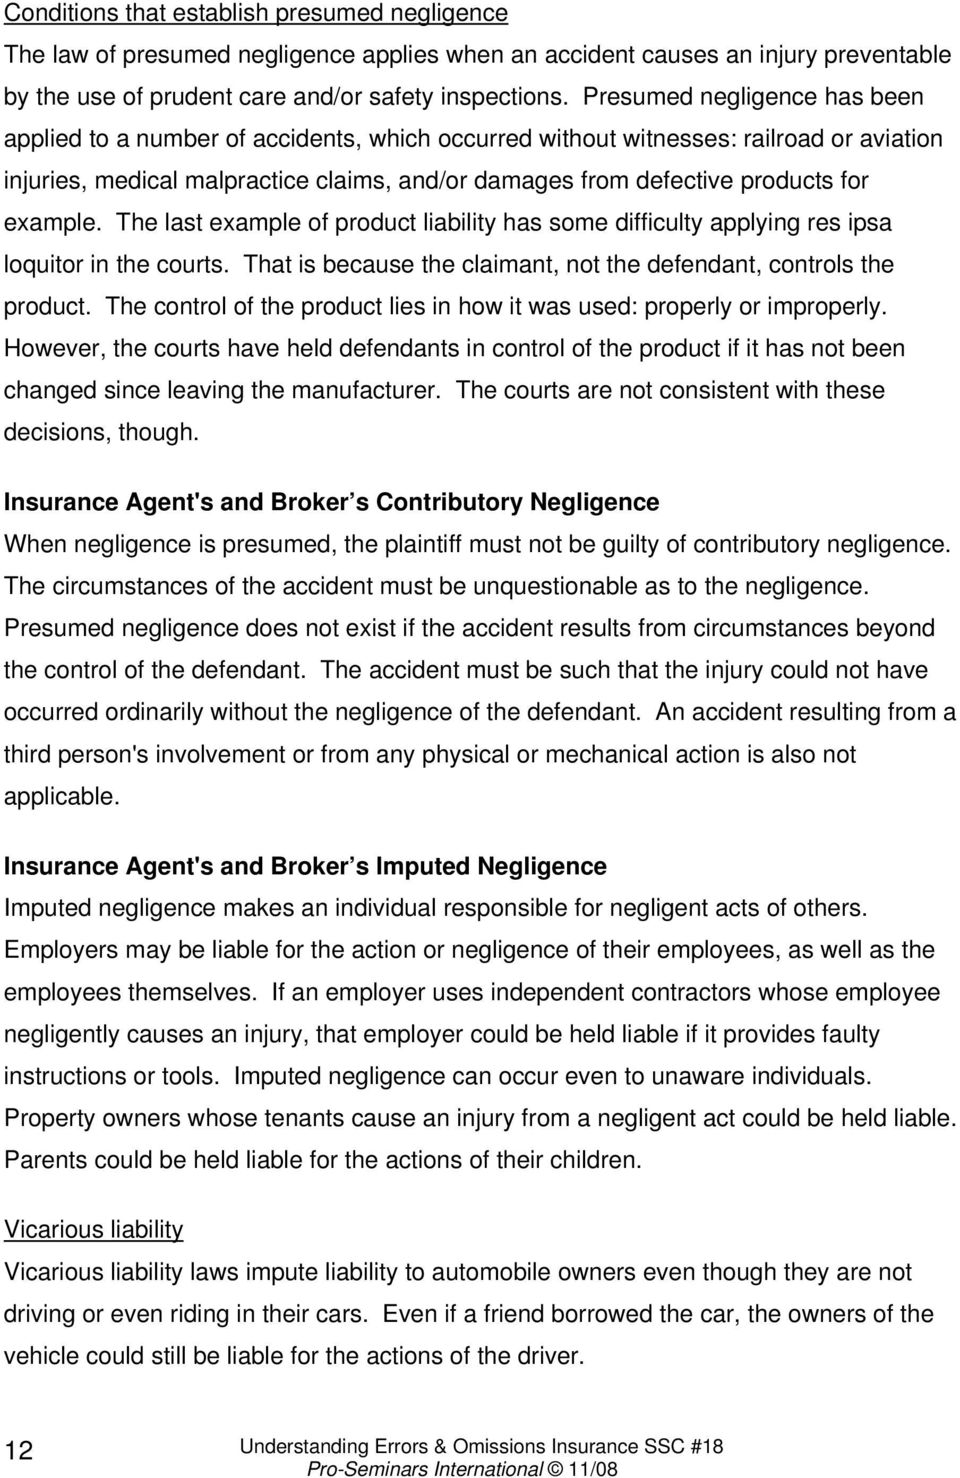 example. The last example of product liability has some difficulty applying res ipsa loquitor in the courts. That is because the claimant, not the defendant, controls the product.